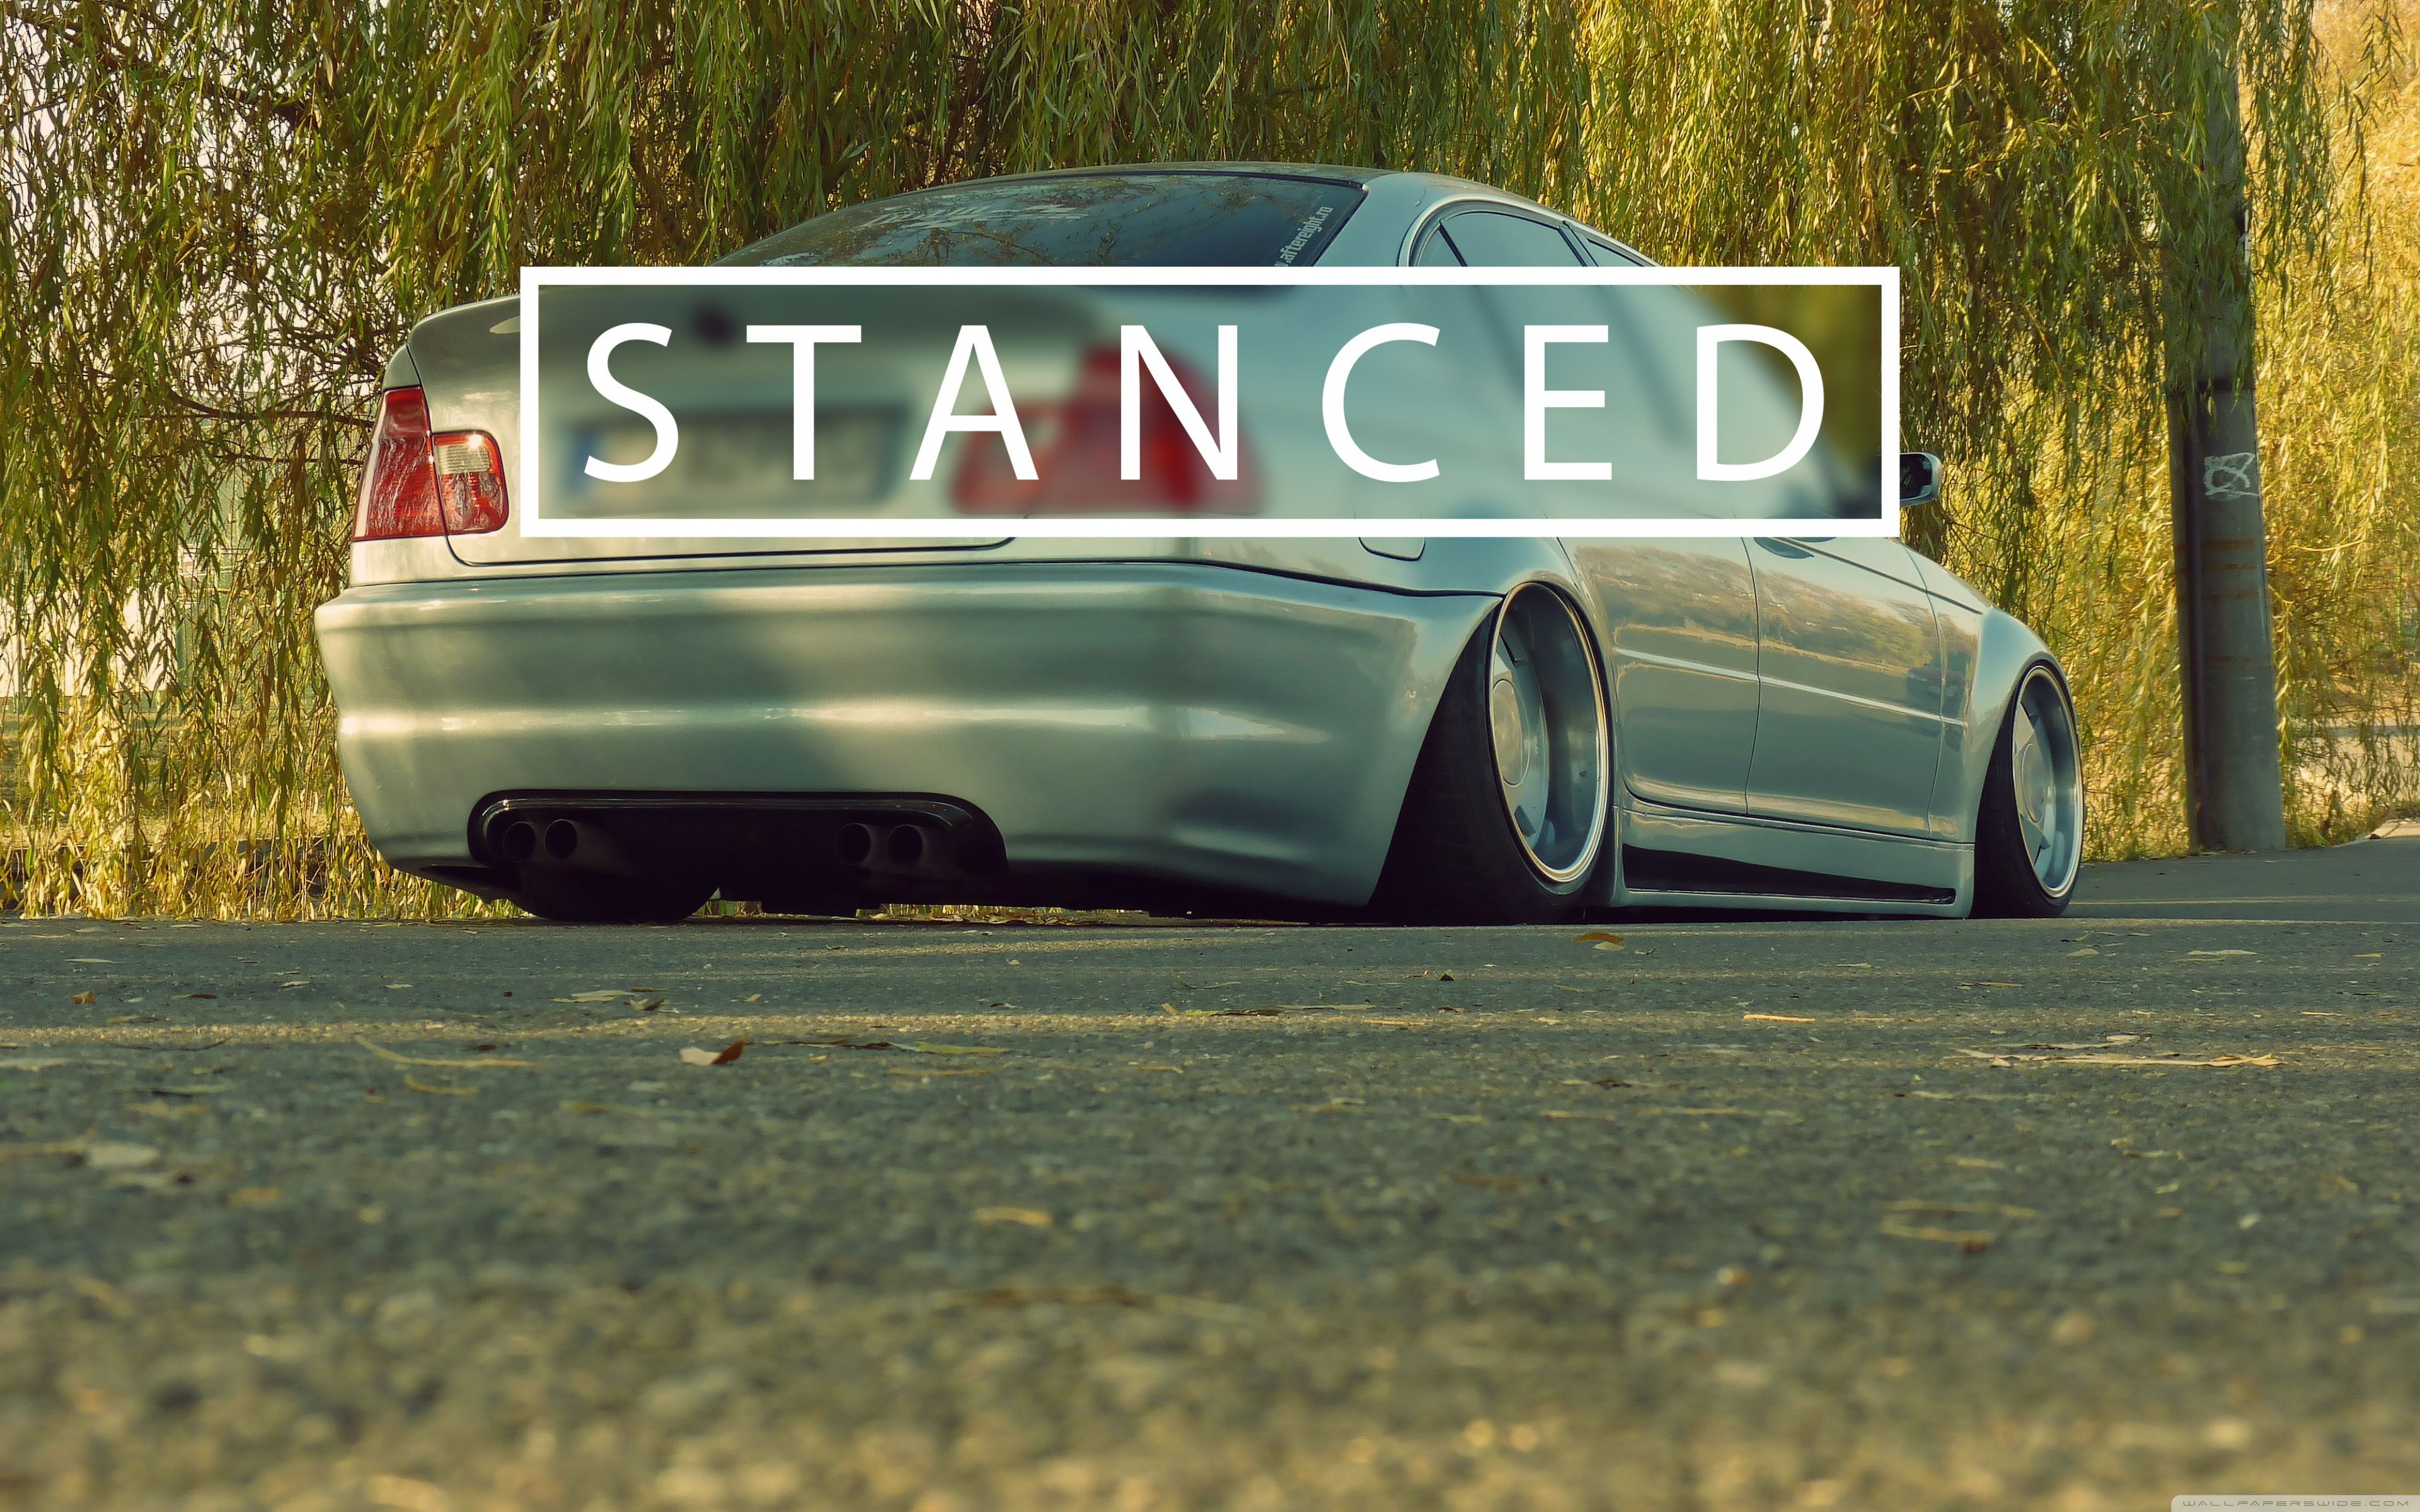 Stance Car 4K Wallpapers - Top Free Stance Car 4K ...